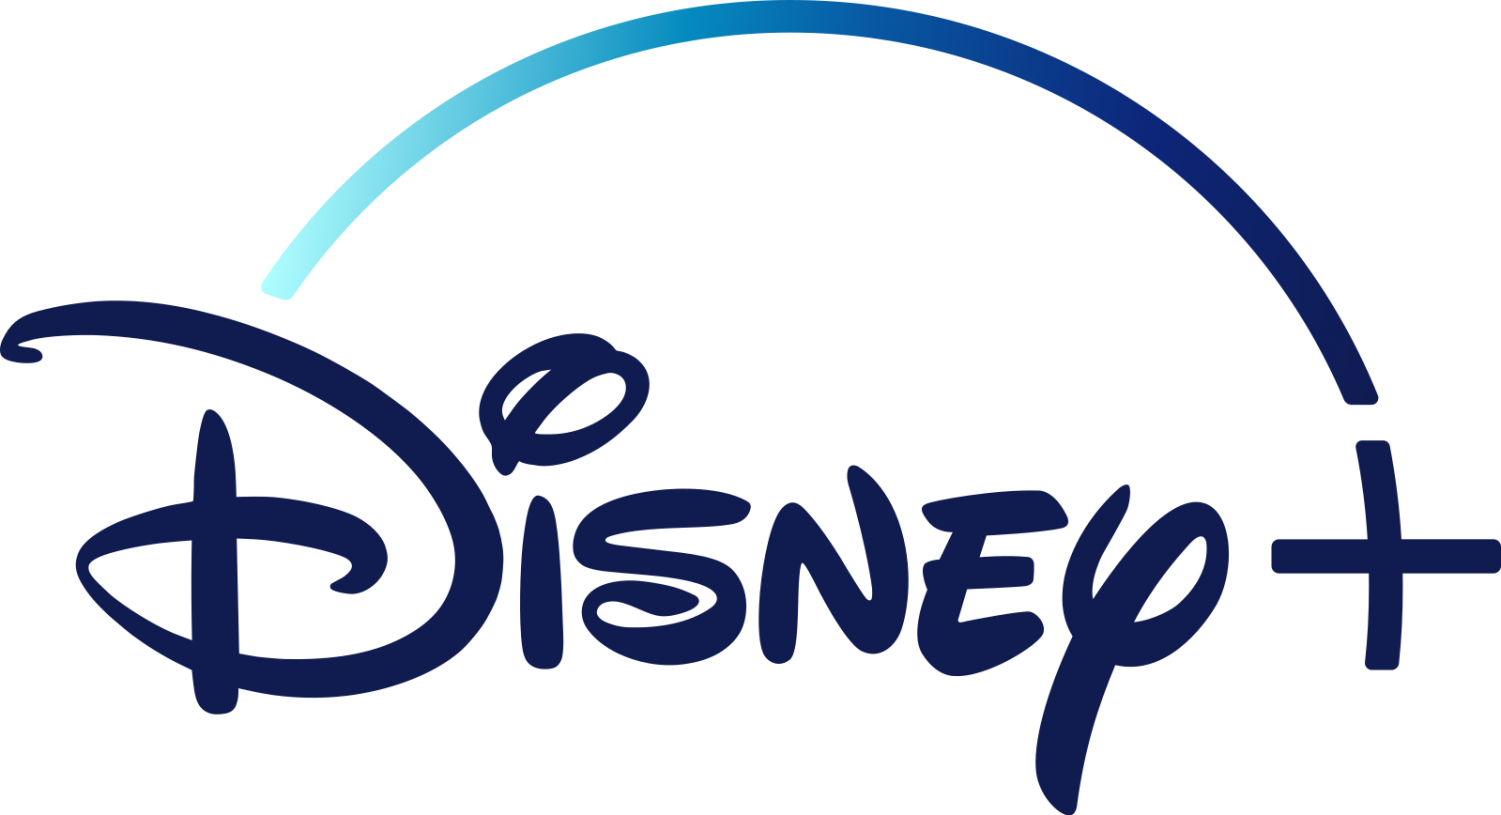 Disney+ logo, is an upcoming online video streaming subscription service owned and operated by Disney Streaming Services, a subsidiary of The Walt Disney Company.